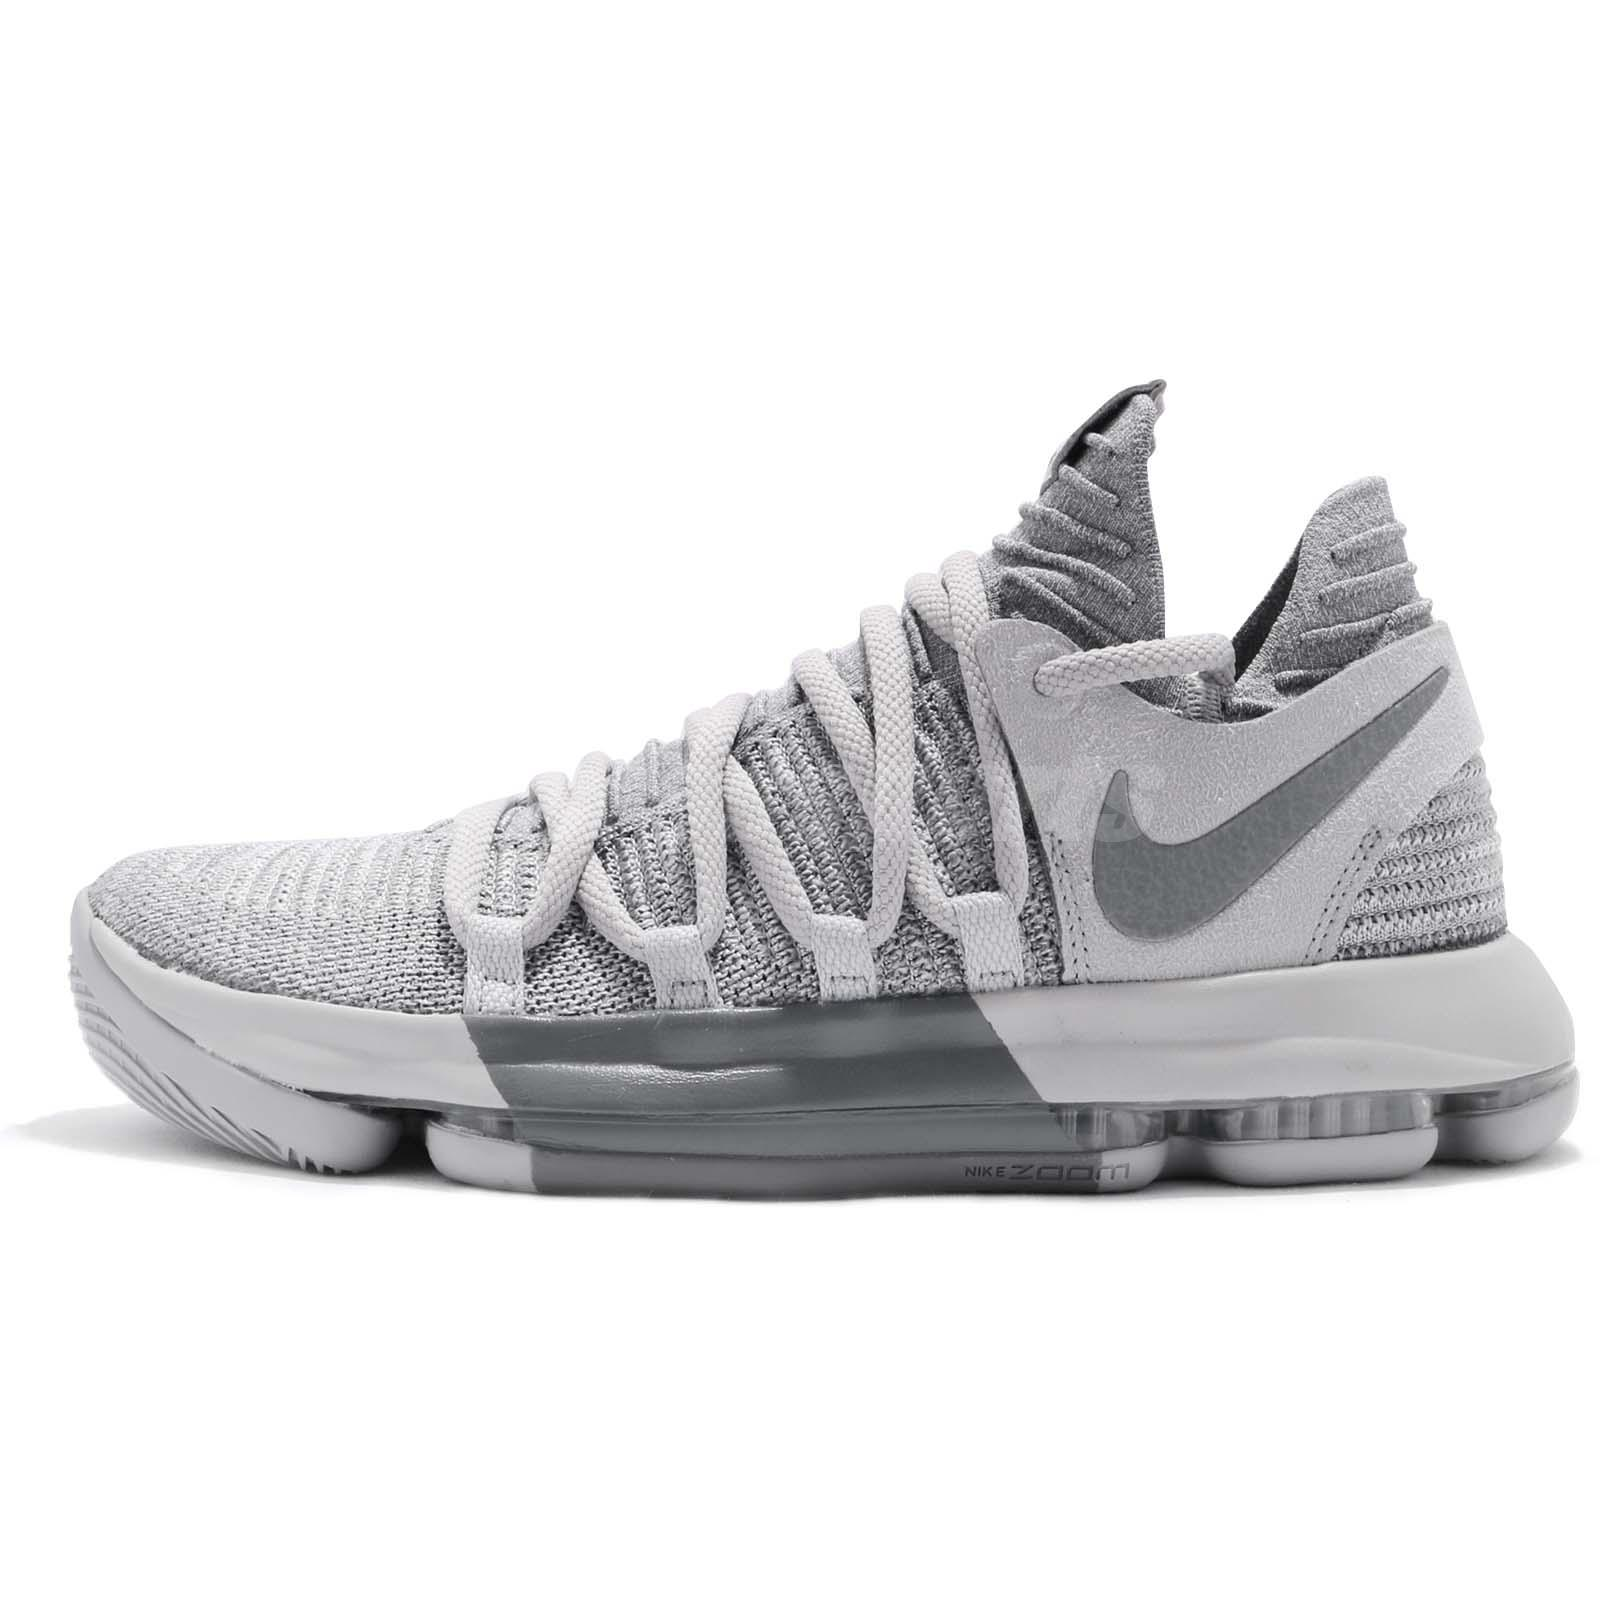 72c93d916654 store new release nike kd 10 dark grey reflective silver ff41a 83d90  new  zealand nike zoom kd10 ep x wolf grey kevin durant men basketball shoes  897816 007